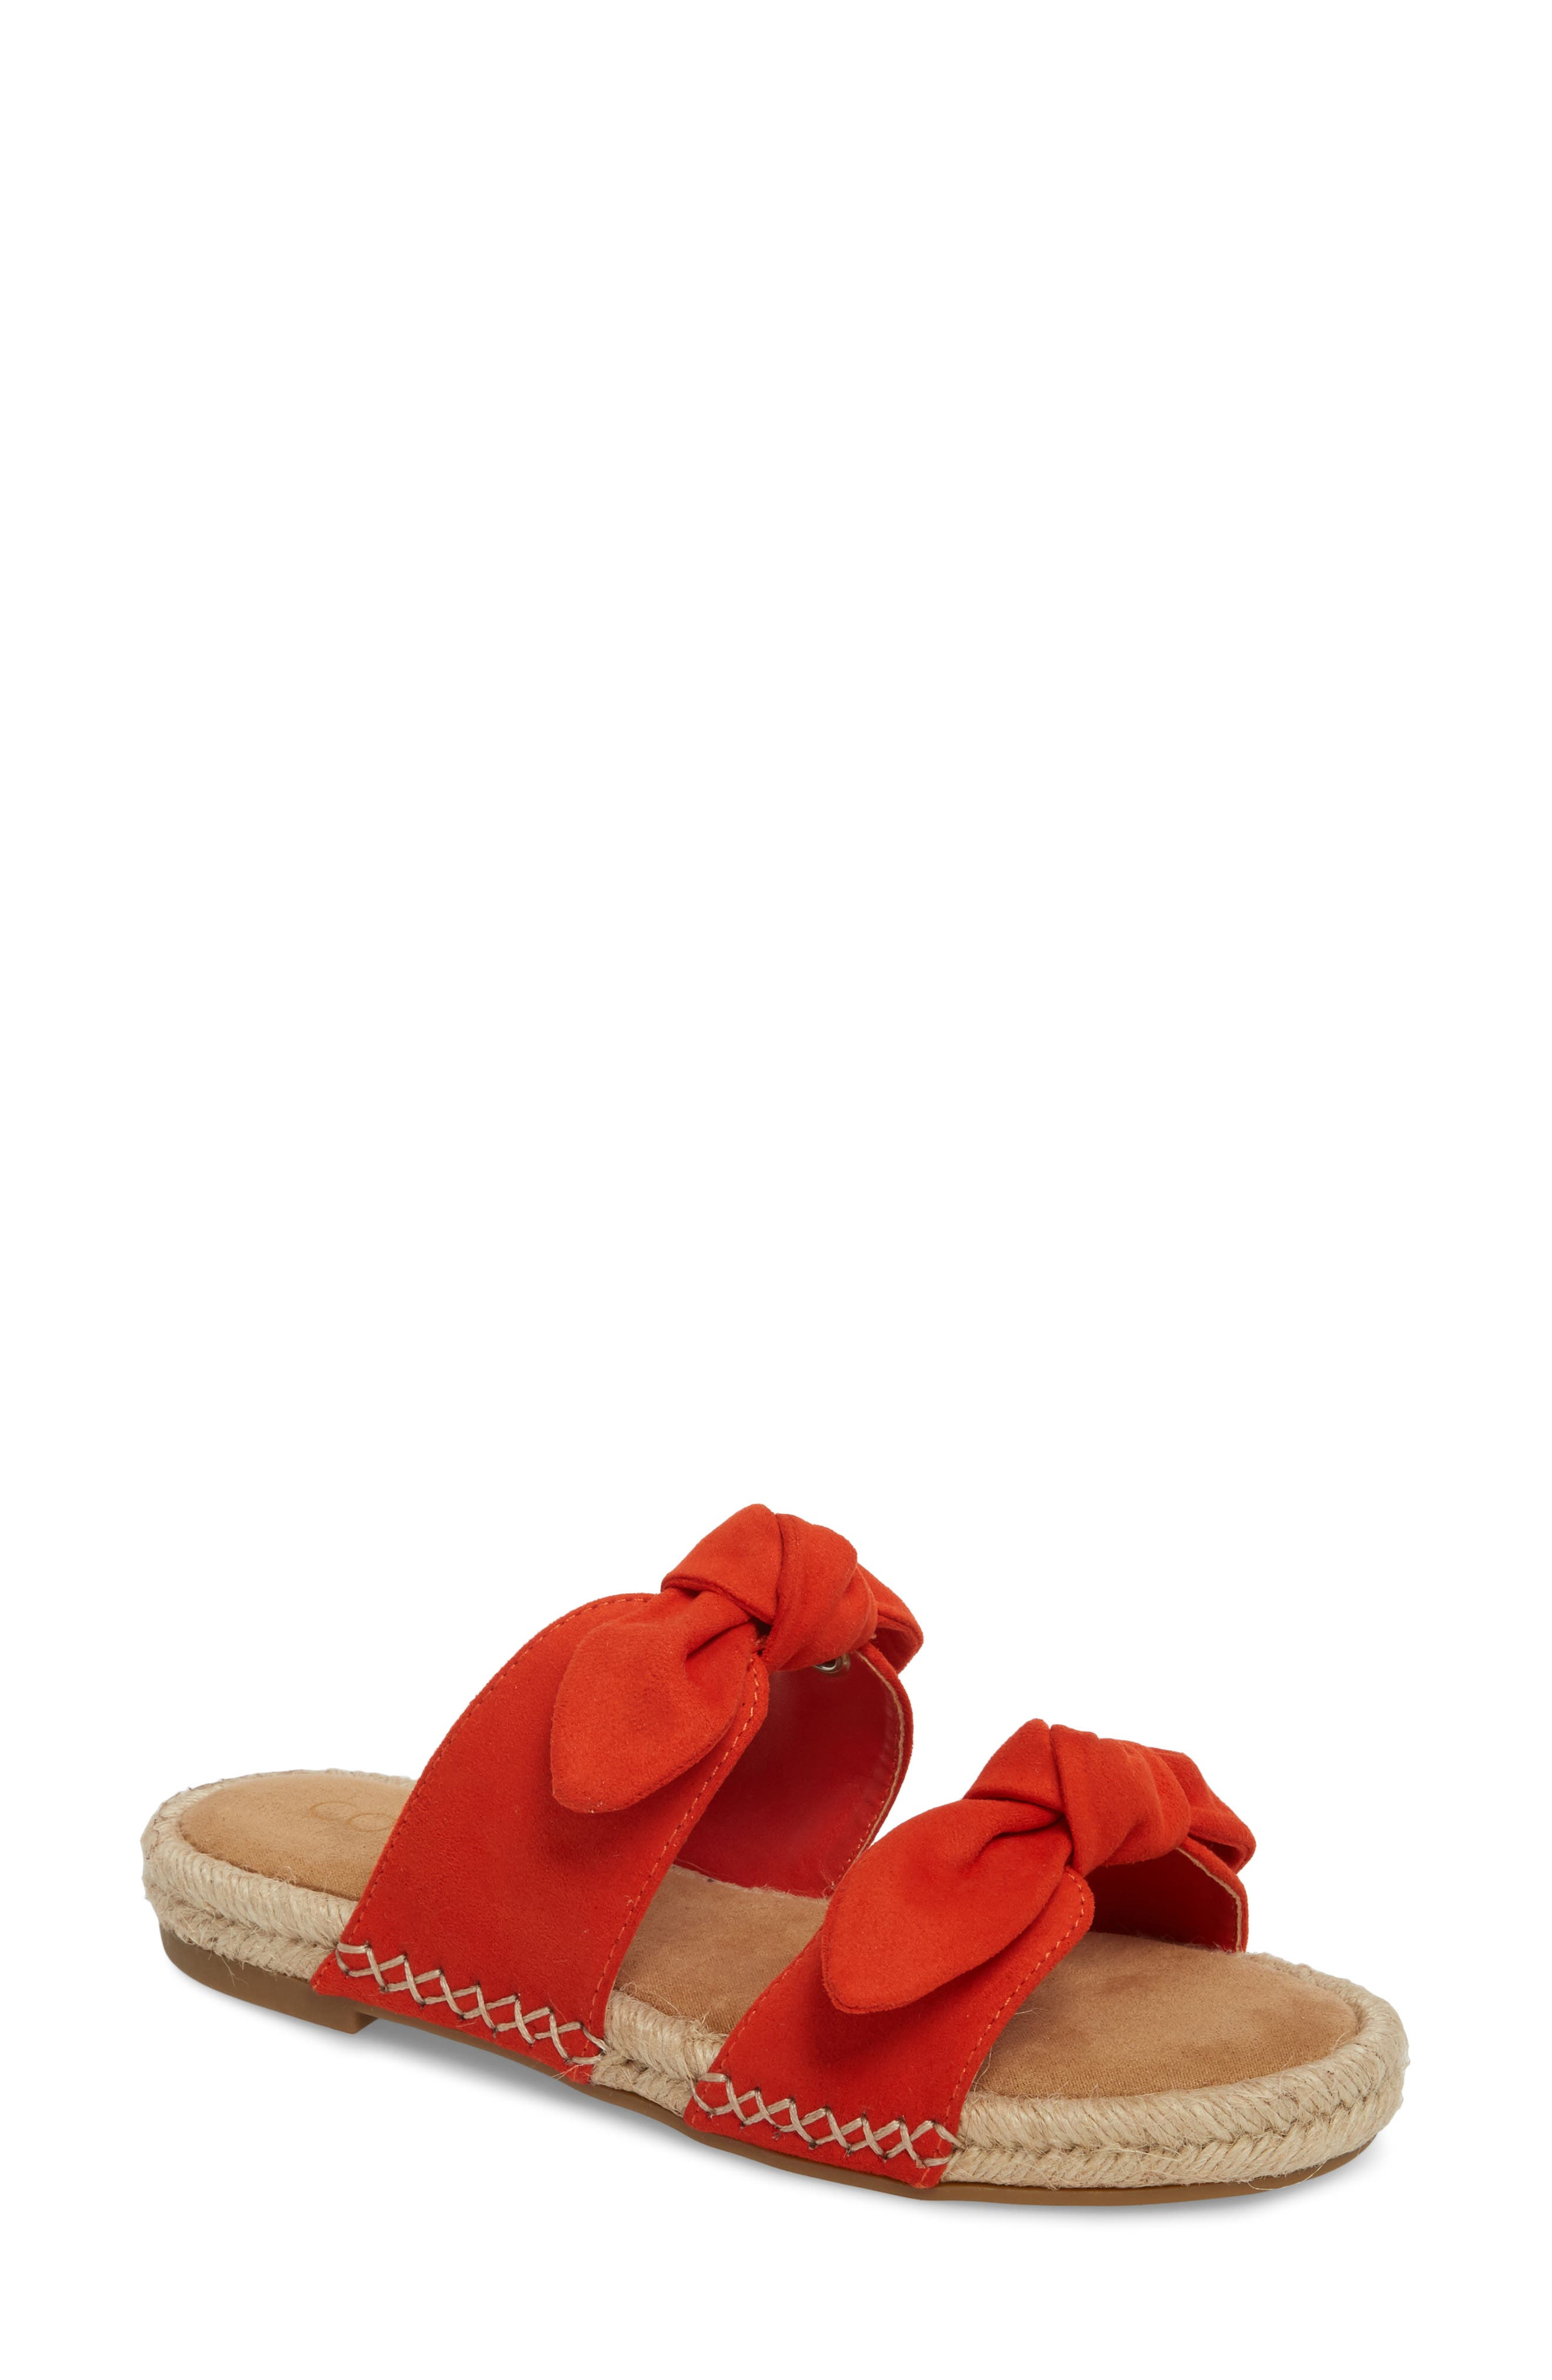 Gianna Espadrille Slide Sandal,                             Main thumbnail 1, color,                             Fire Suede